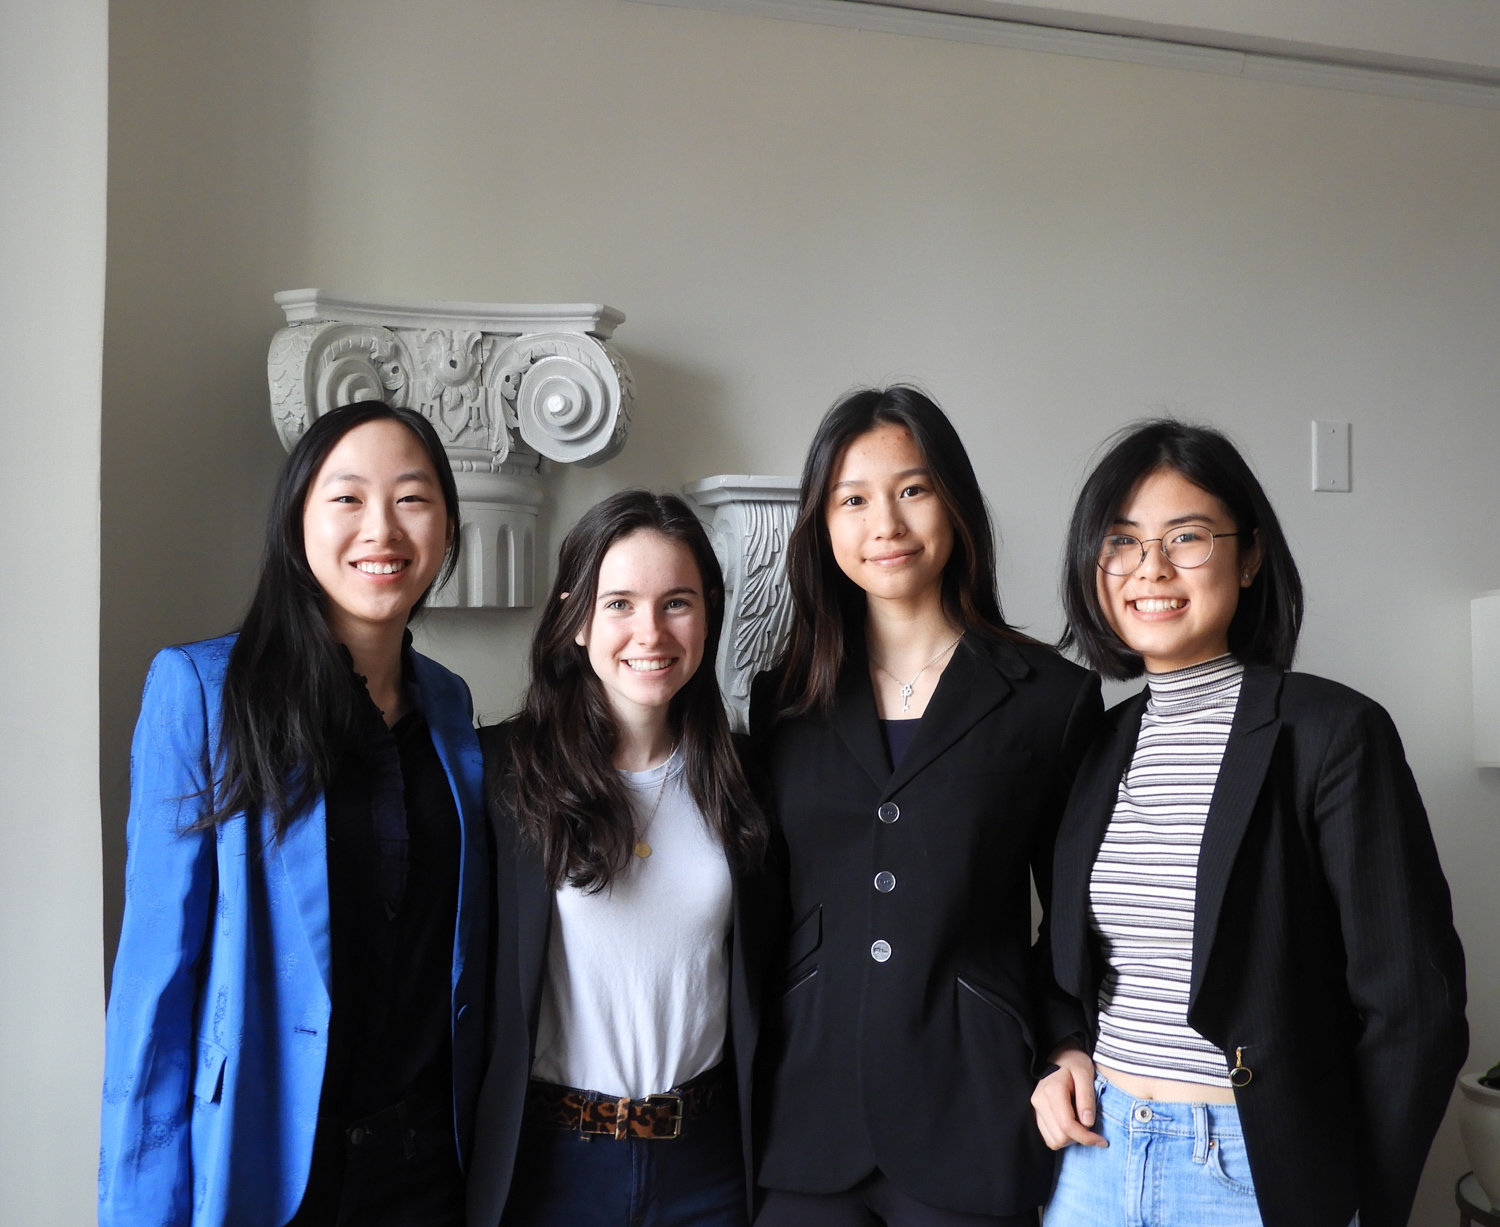 Ethical Culture Fieldston School students Rosemary Jiang, left, Olivia Pollack, Vivian Lee and Natalie Chen want to teach women about financial literacy. They're the founding members of the school's Females in Finance Club.